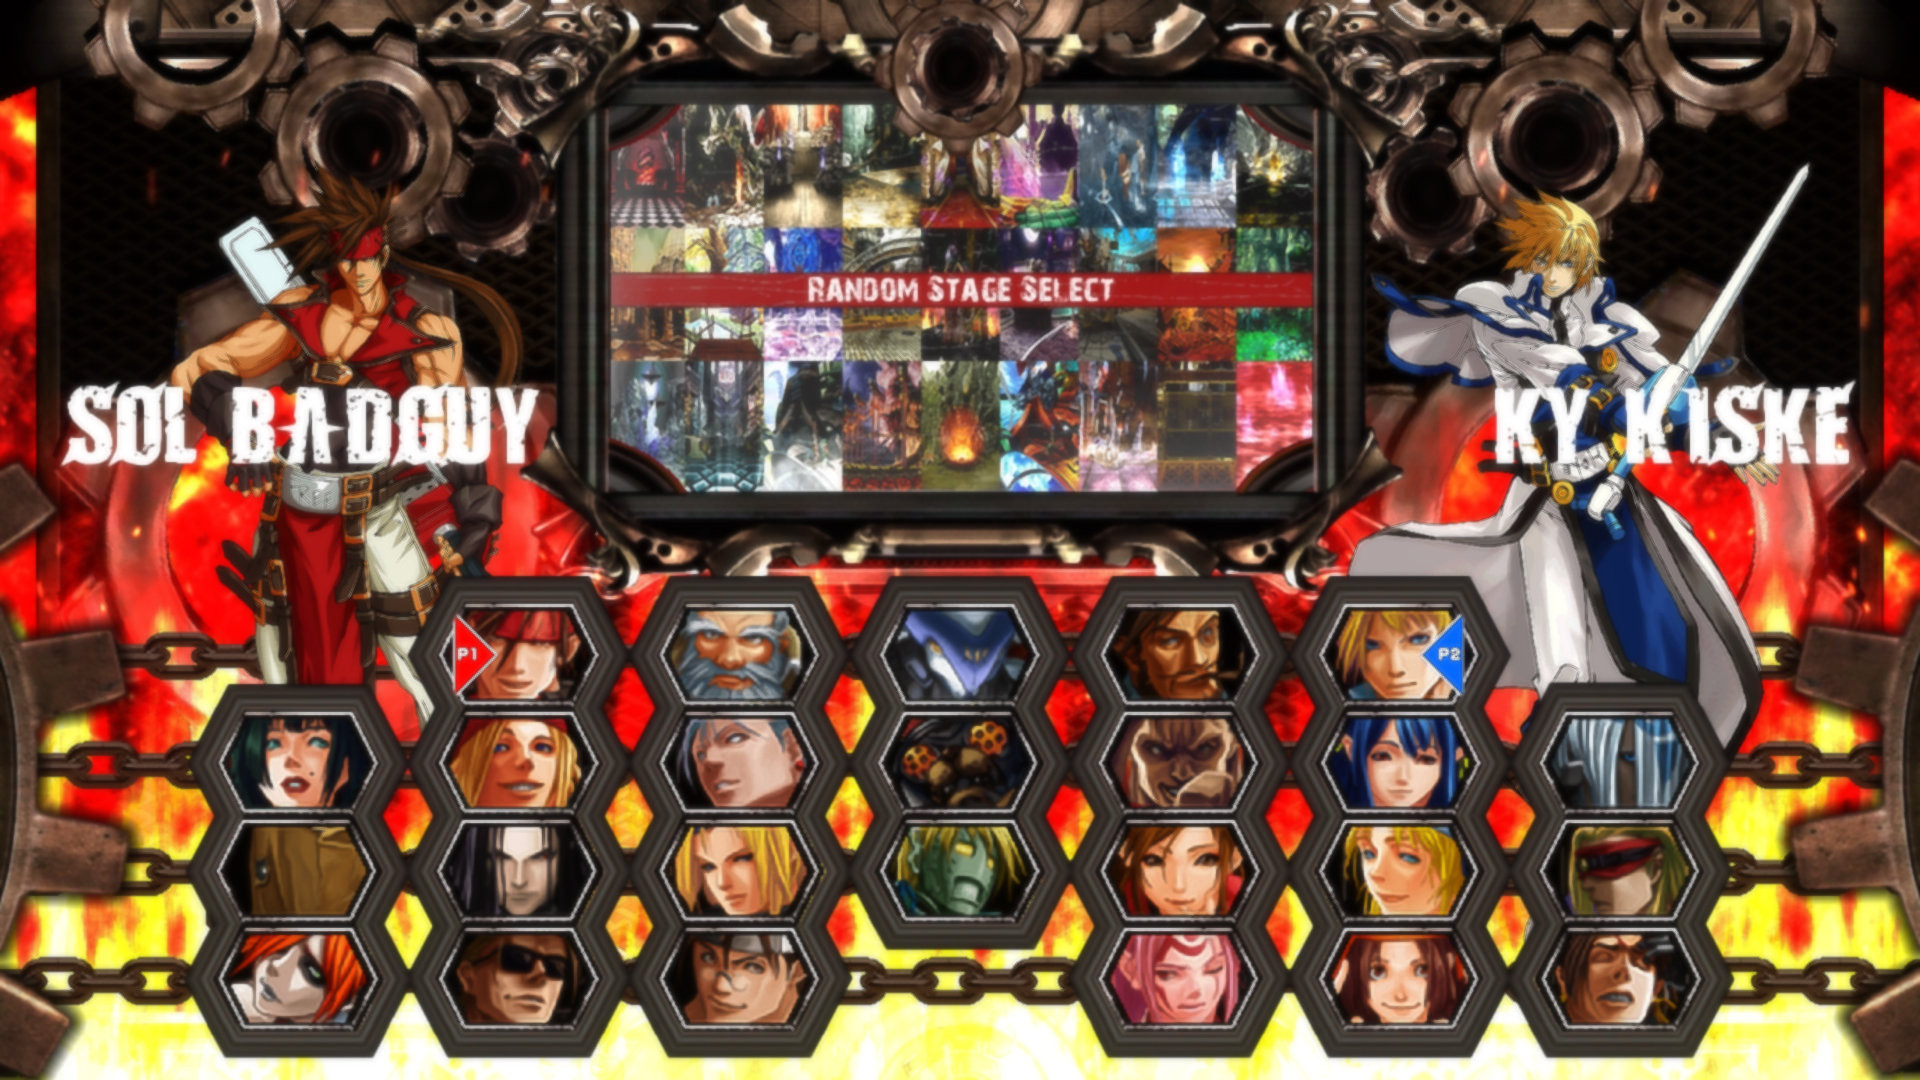 Guilty Gear XX Bloodshed Type OD+ By VGames Updated (21.08.18) Mugen_2018-08-18_16-24-13